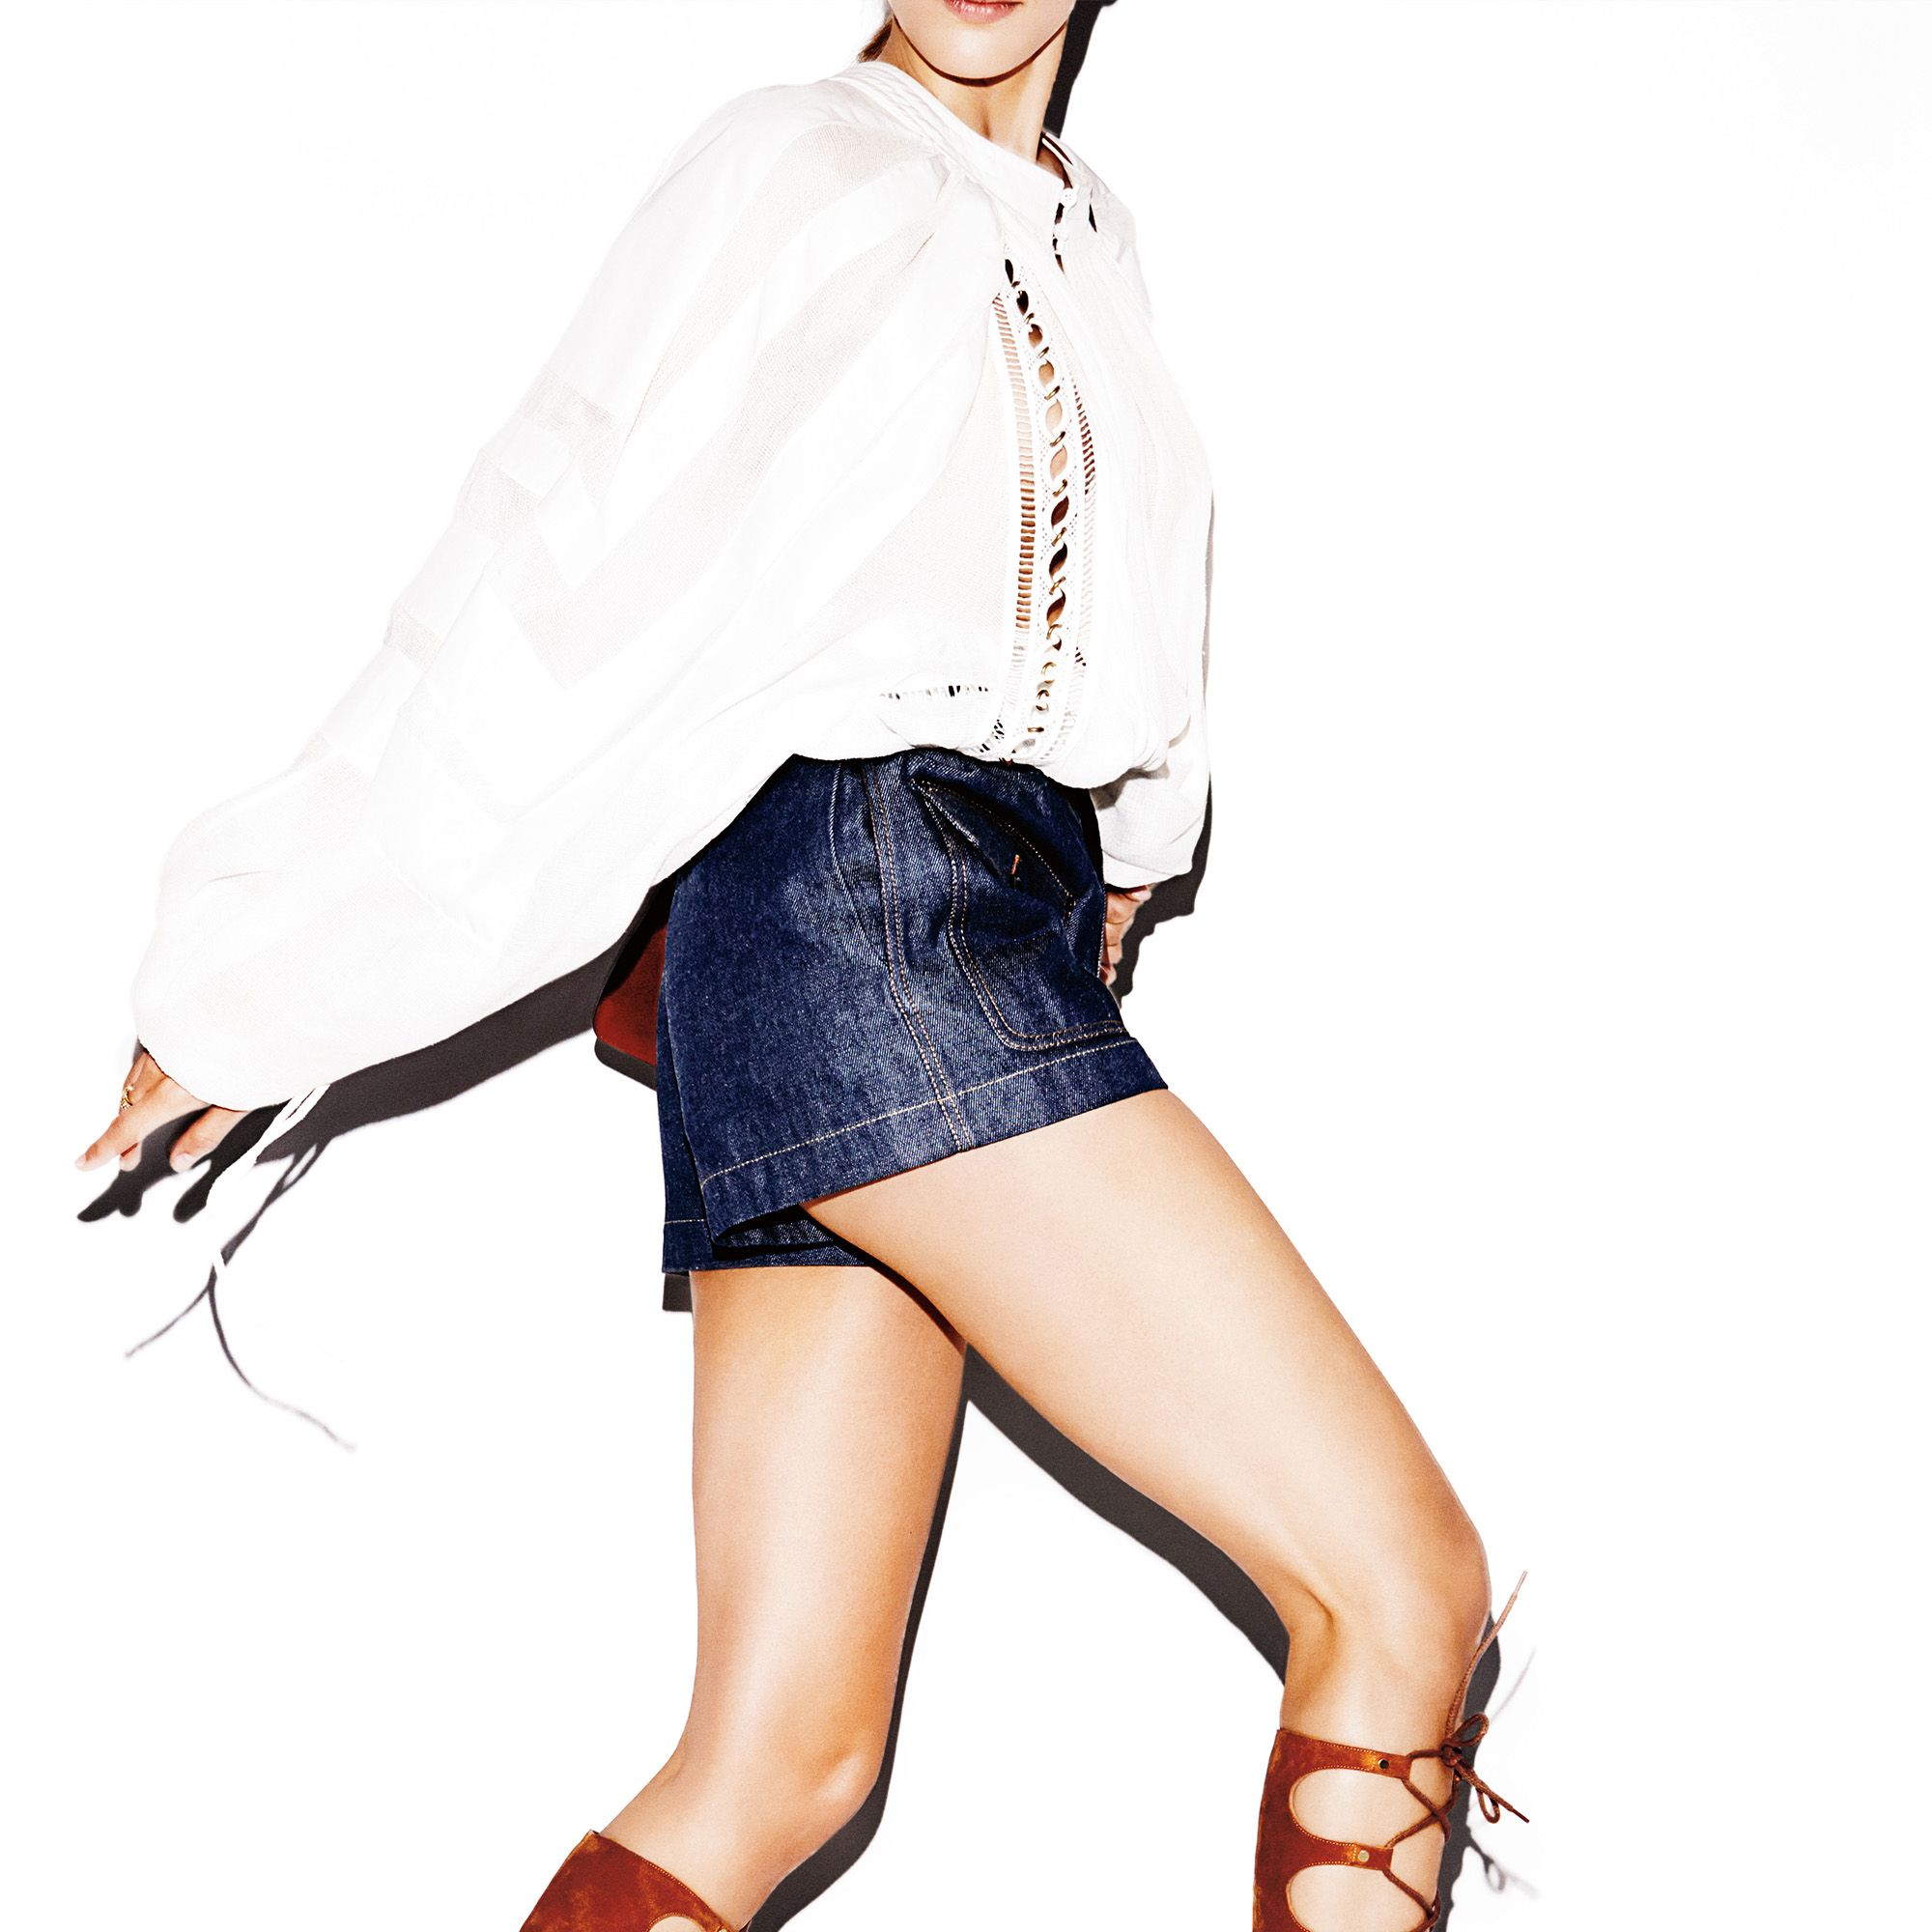 """<strong>1) The White Blouse</strong>The classic skews romantic, thanks to eyelet details and billowy sleeves.<strong>2) The Gladiator</strong>The Hercules sandal steps forward—this time in a bold hue.<strong>Chloé</strong> blouse, $3,250, and shorts, $395, <a href=""""http://www.saksfifthavenue.com/Chloe/Women-s-Apparel/shop/_/N-1z12vhrZ52flogZ6lvnb8/Ne-6lvnb6"""" target=""""_blank"""">saksfifthavenue.com</a>&#x3B; <strong>Chloé </strong>bag, $1,890, and sandals, $1,450, <a href=""""http://shop.harpersbazaar.com/designers/chloe/"""" target=""""_blank"""">shopBAZAAR.com</a>&#x3B; <strong>Tiffany &amp&#x3B; Co. &nbsp&#x3B;x&nbsp&#x3B;Schlumberger</strong> ring, $2,500, <a href=""""http://www.tiffany.com/shopping/CategoryBrowse.aspx?mcat=148206&amp&#x3B;cid=288190#p+1-n+10000-c+288190-s+5-r+-t+-ni+1-x+-pu+-f+-lr+-hr+-ri+-mi+-pp+"""" target=""""_blank"""">tiffany.com</a>.&nbsp&#x3B;"""